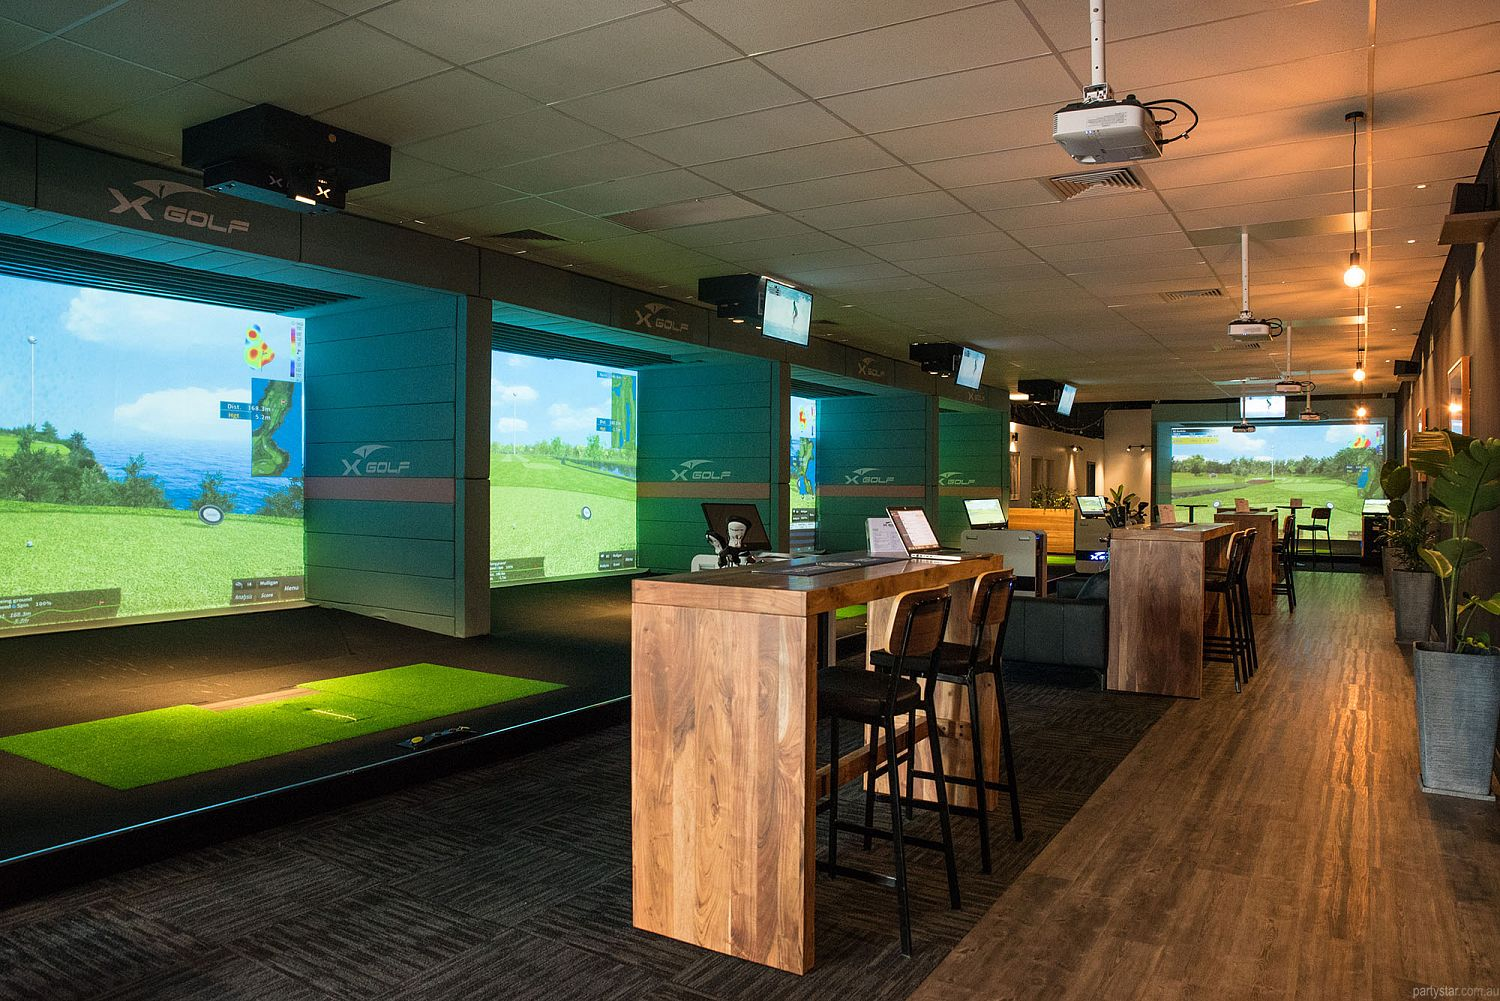 X-Golf, South Geelong, VIC. Function Room hire photo #2